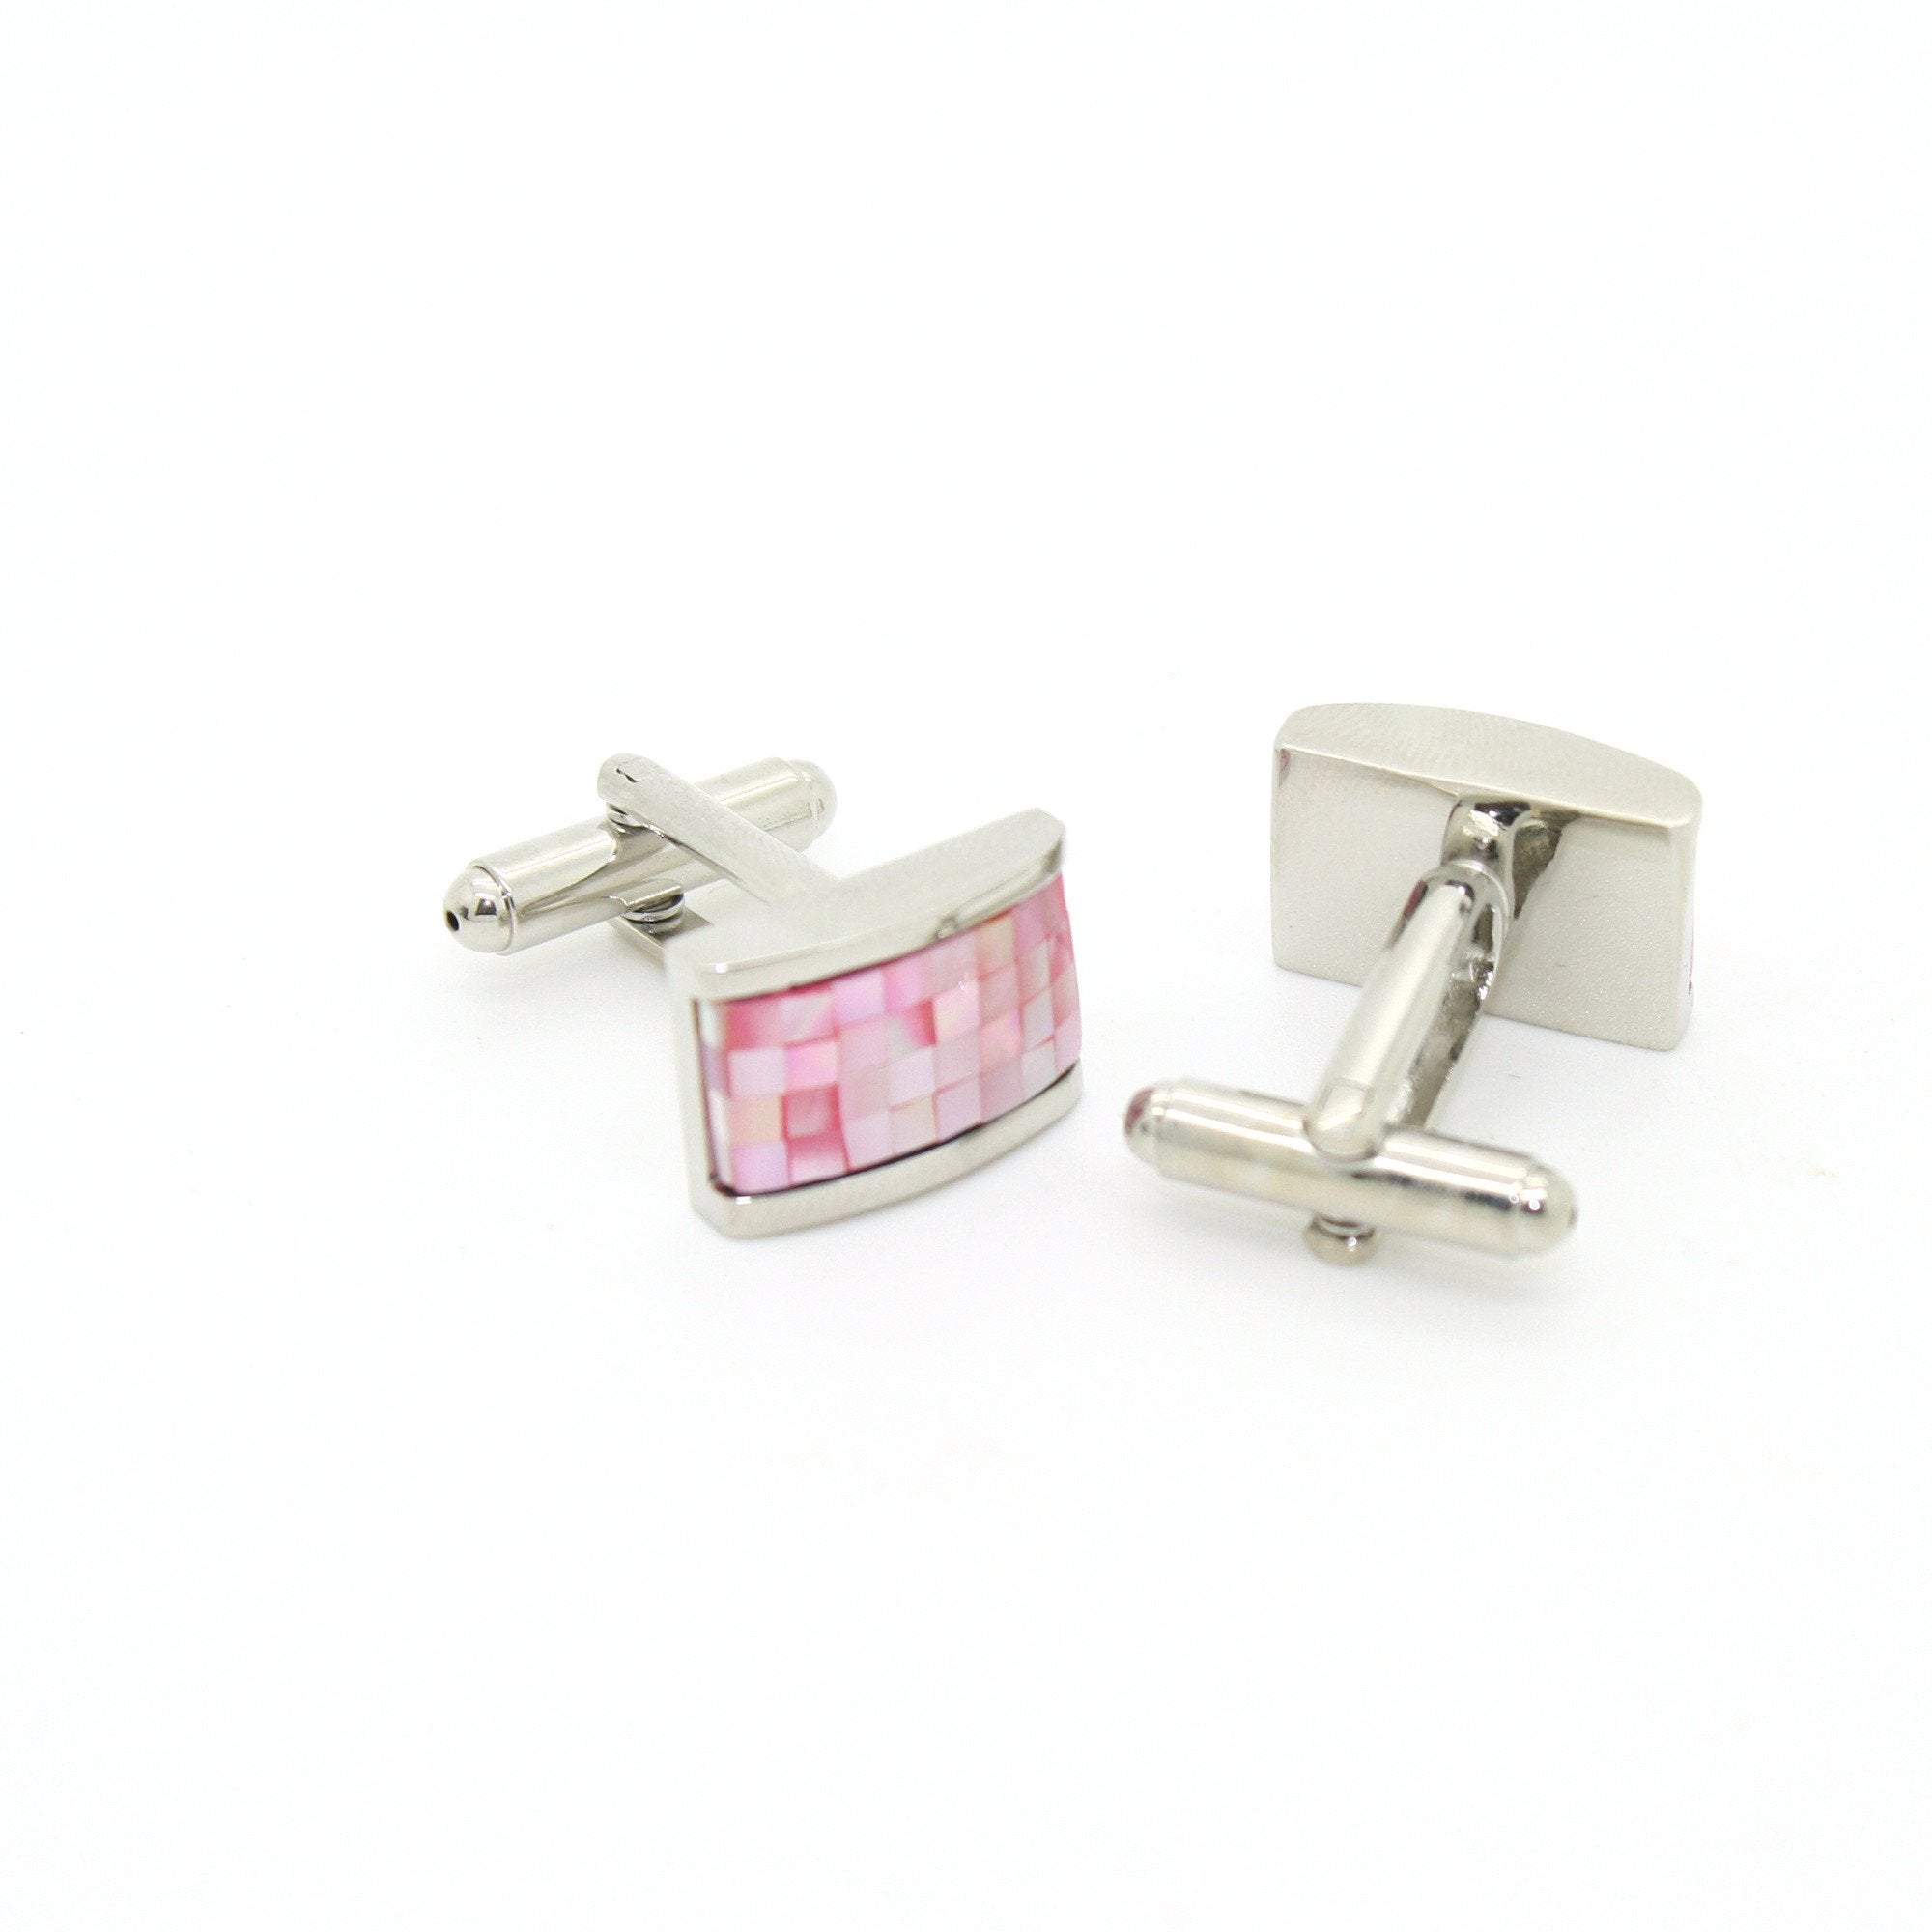 Silvertone Pink Rectangle Shell Cuff Links With Jewelry Box - Giorgio's Menswear